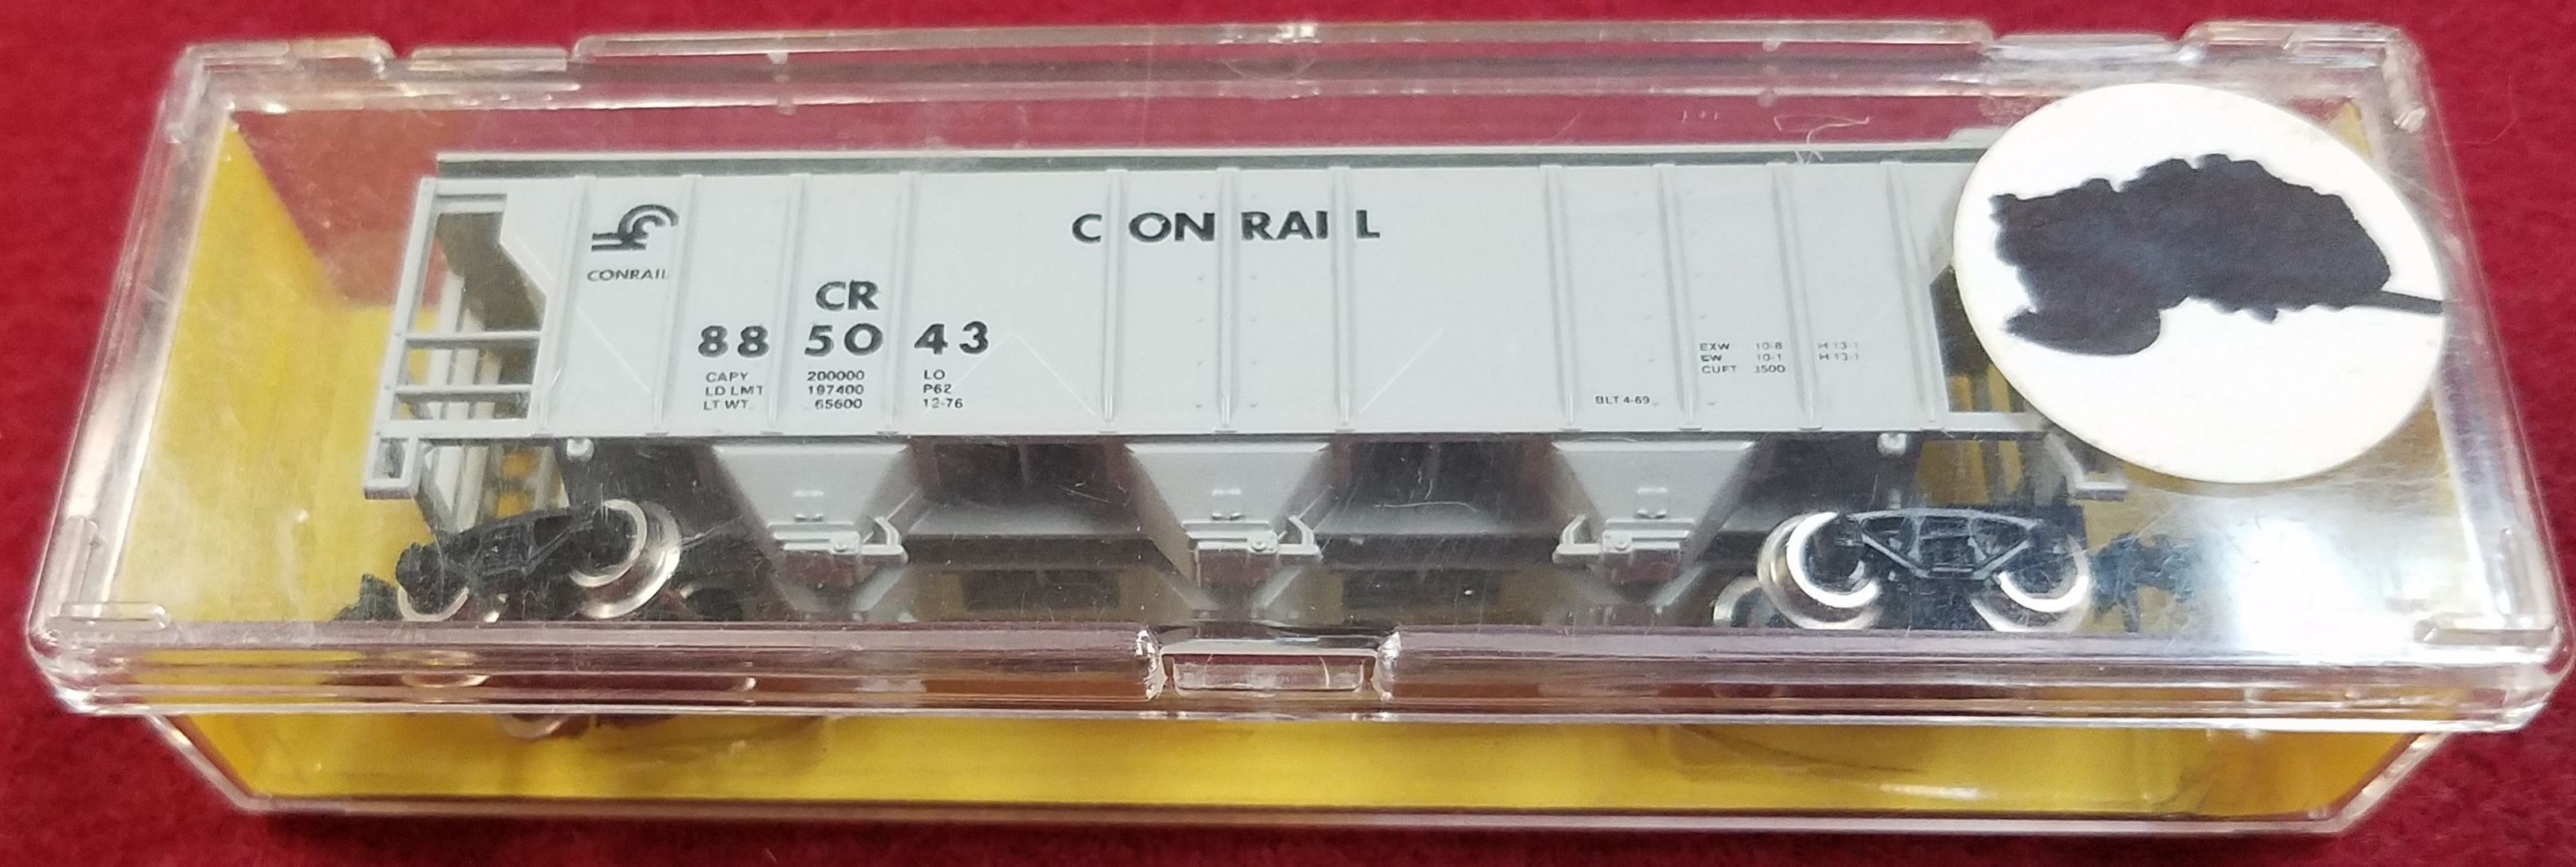 ATLAS - N SCALE - CR 885043 - 3725 COVERED HOPPER CONRAIL